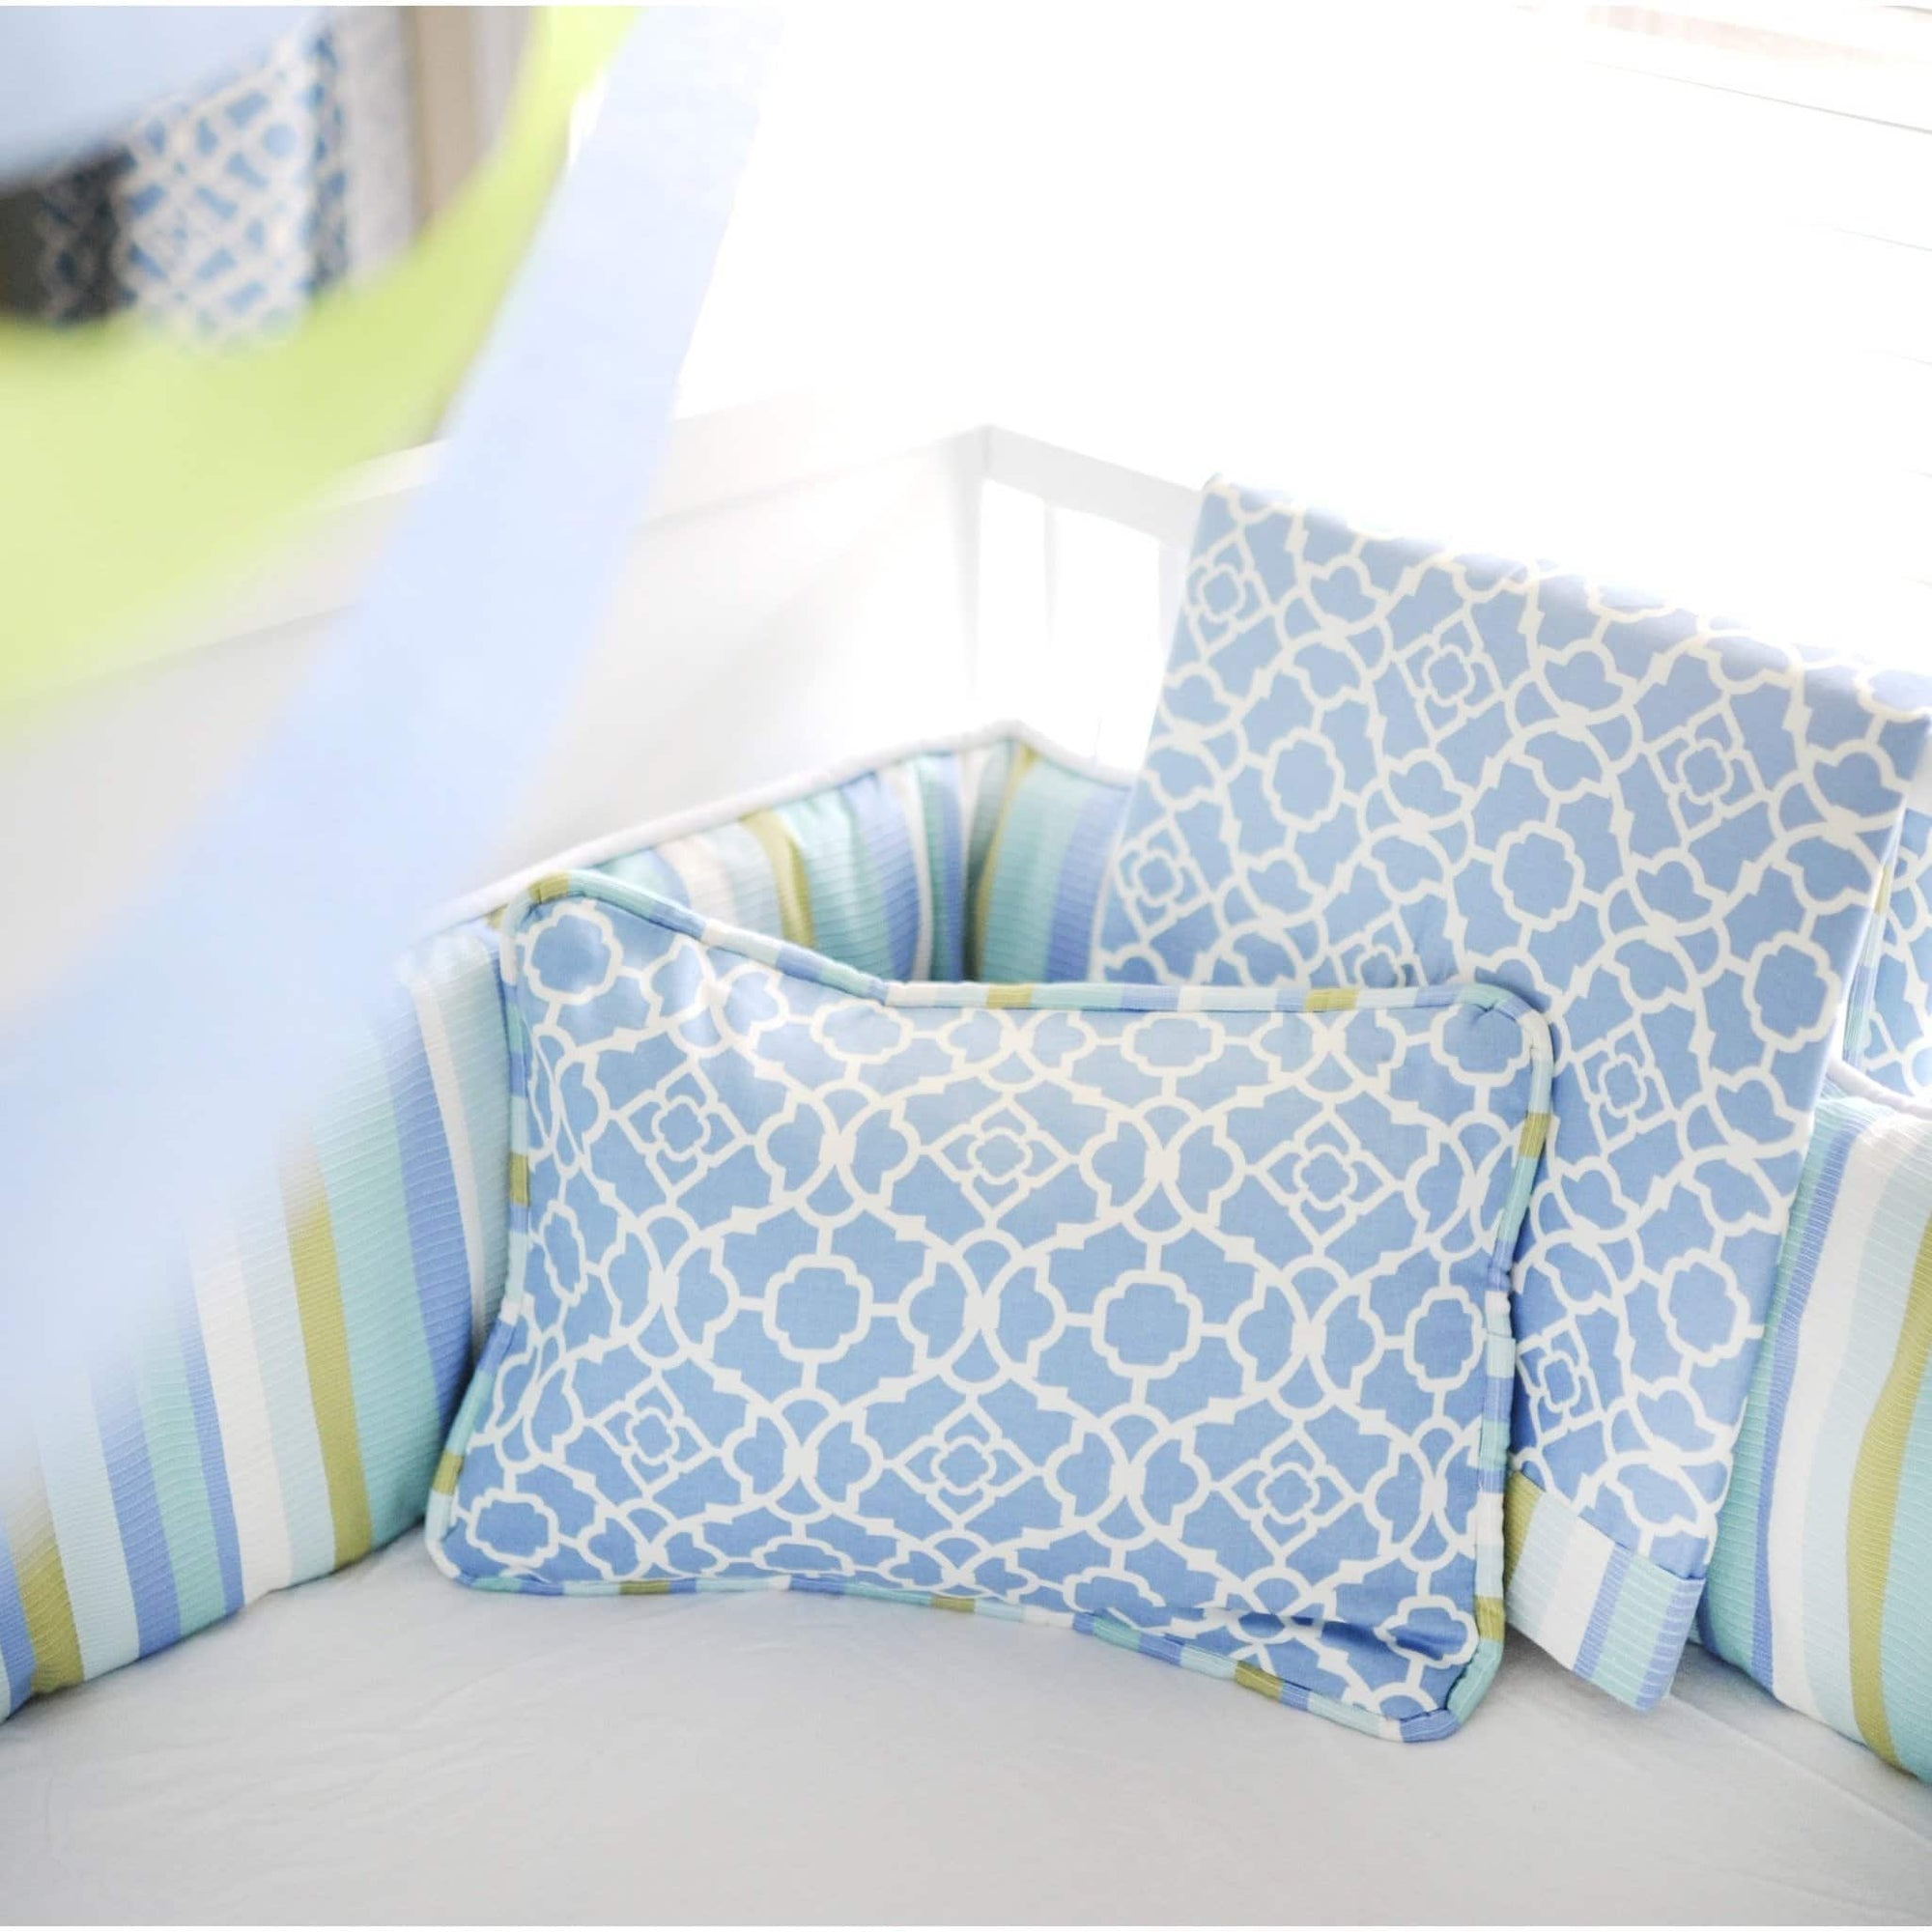 Blanket | By The Bay Baby Blue White and Green-Baby Blanket-Jack and Jill Boutique